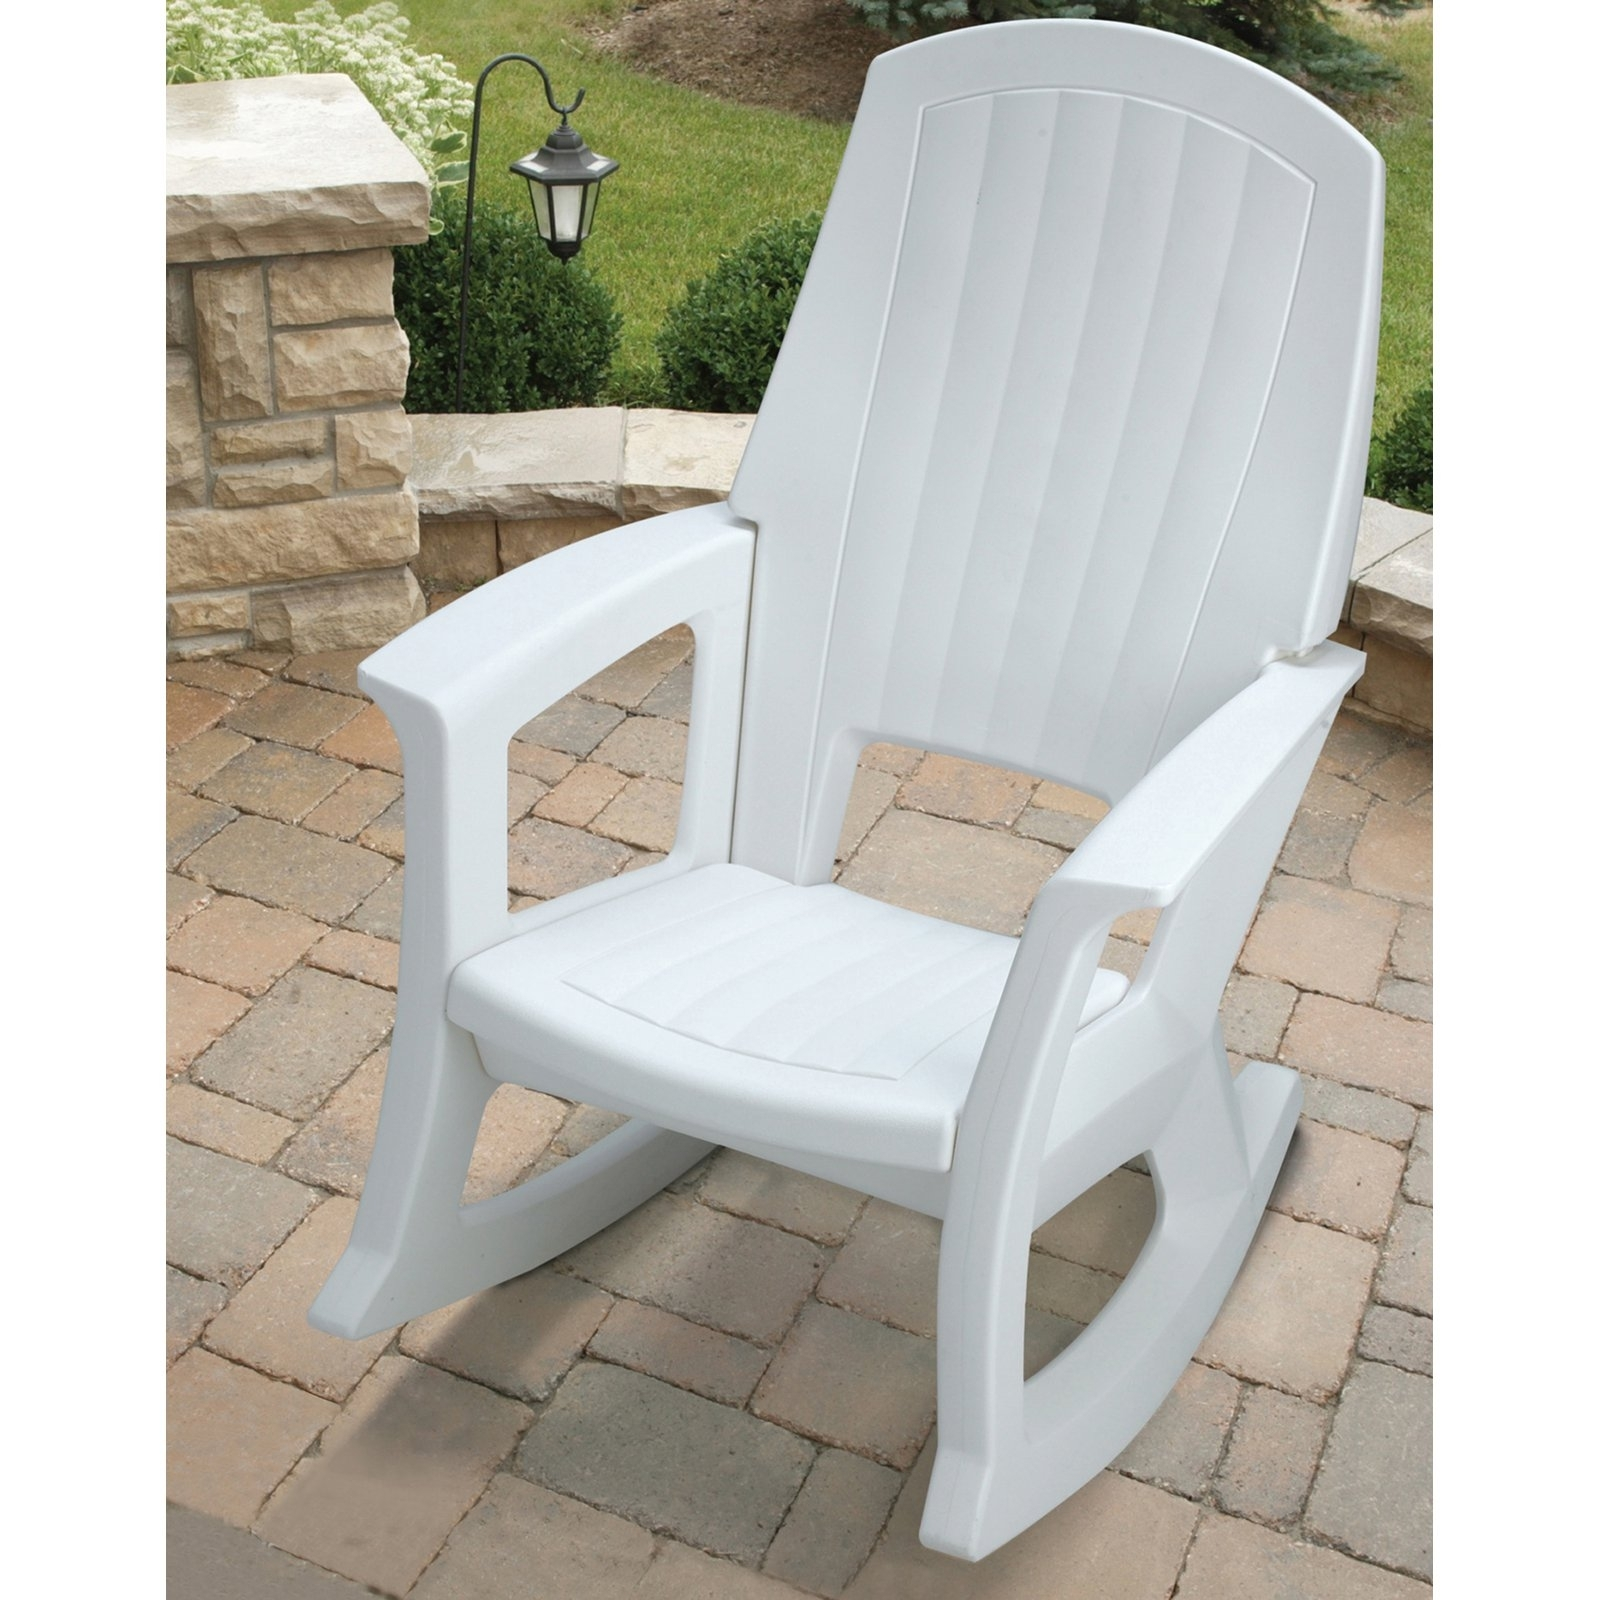 Semco Recycled Plastic Rocking Chair Outdoor Rocking White Porch Pertaining To White Patio Rocking Chairs (#11 of 15)